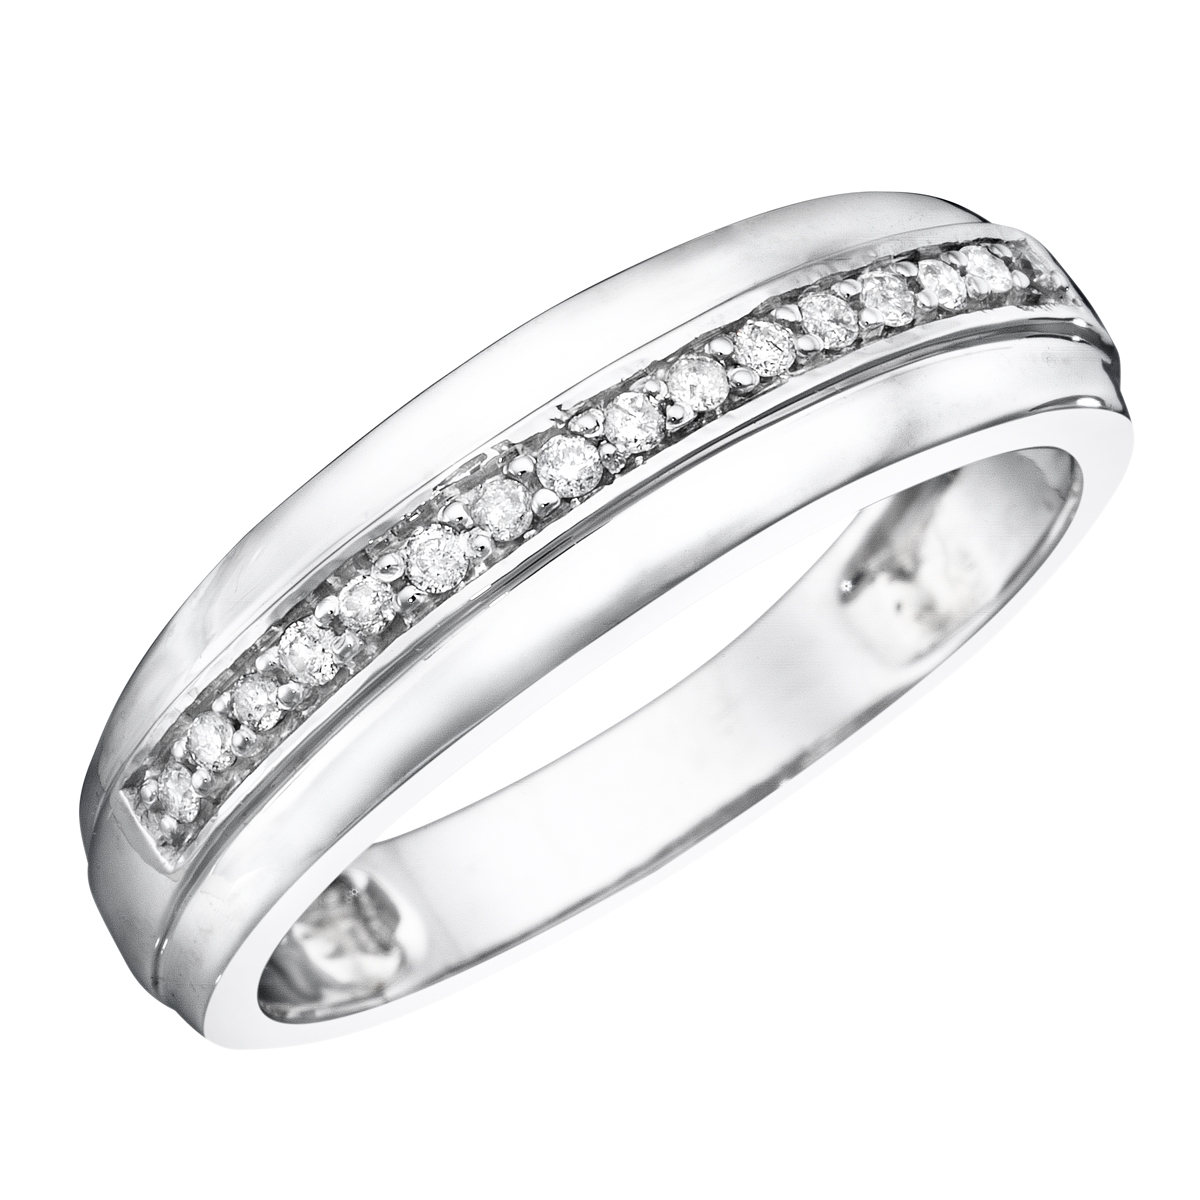 1 2 Carat TW Round Cut Diamond His And Hers Wedding Band